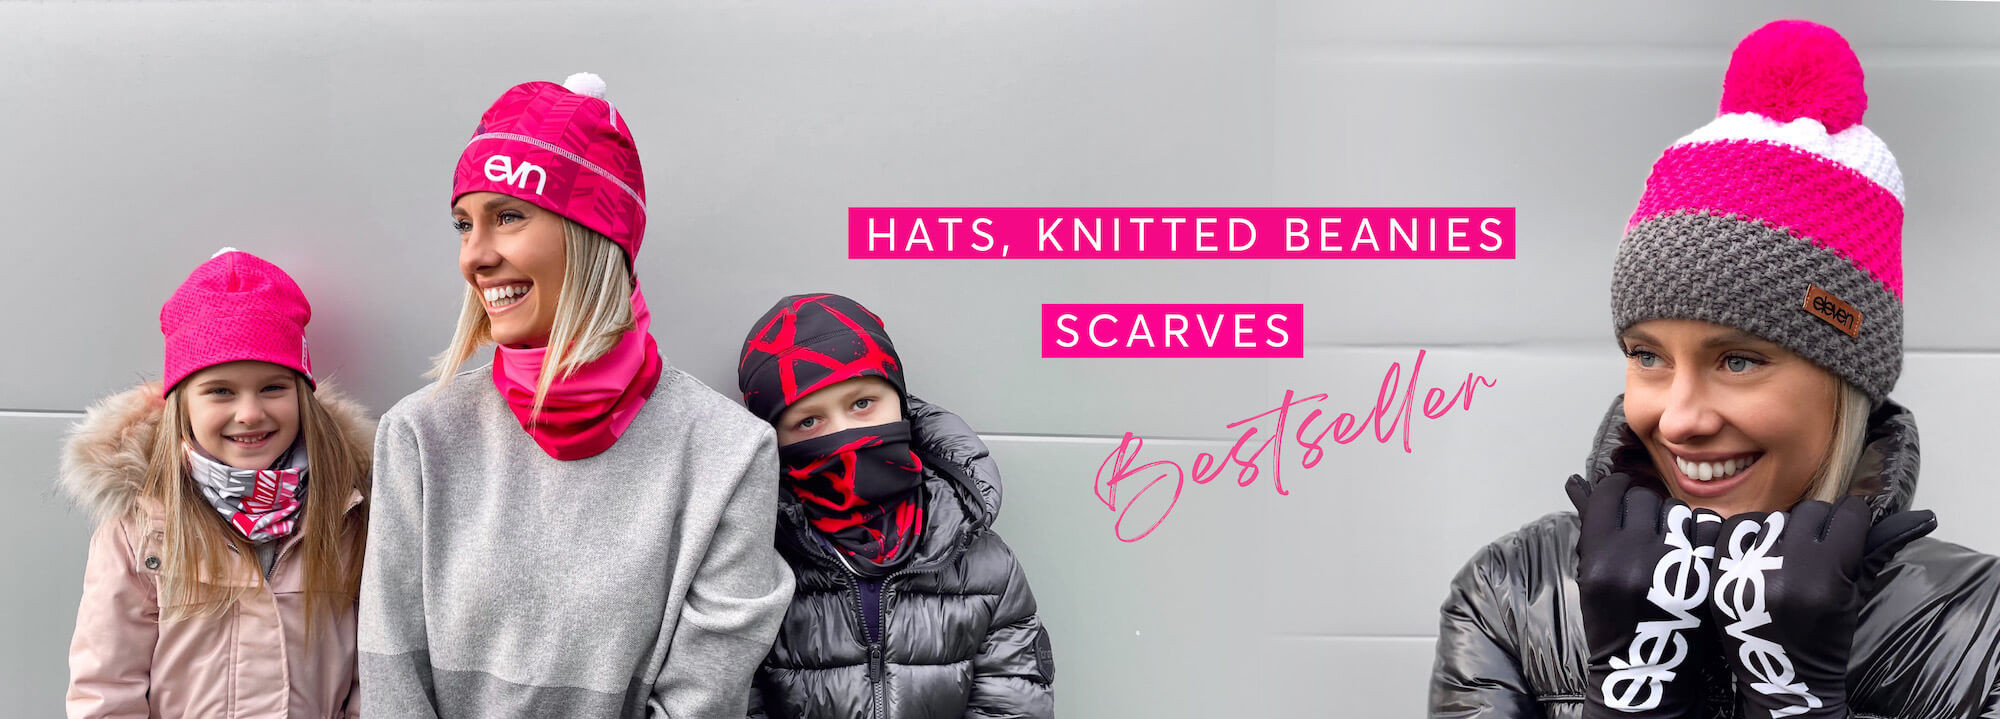 HATS, KNITTED BEANIES AND SCARVES